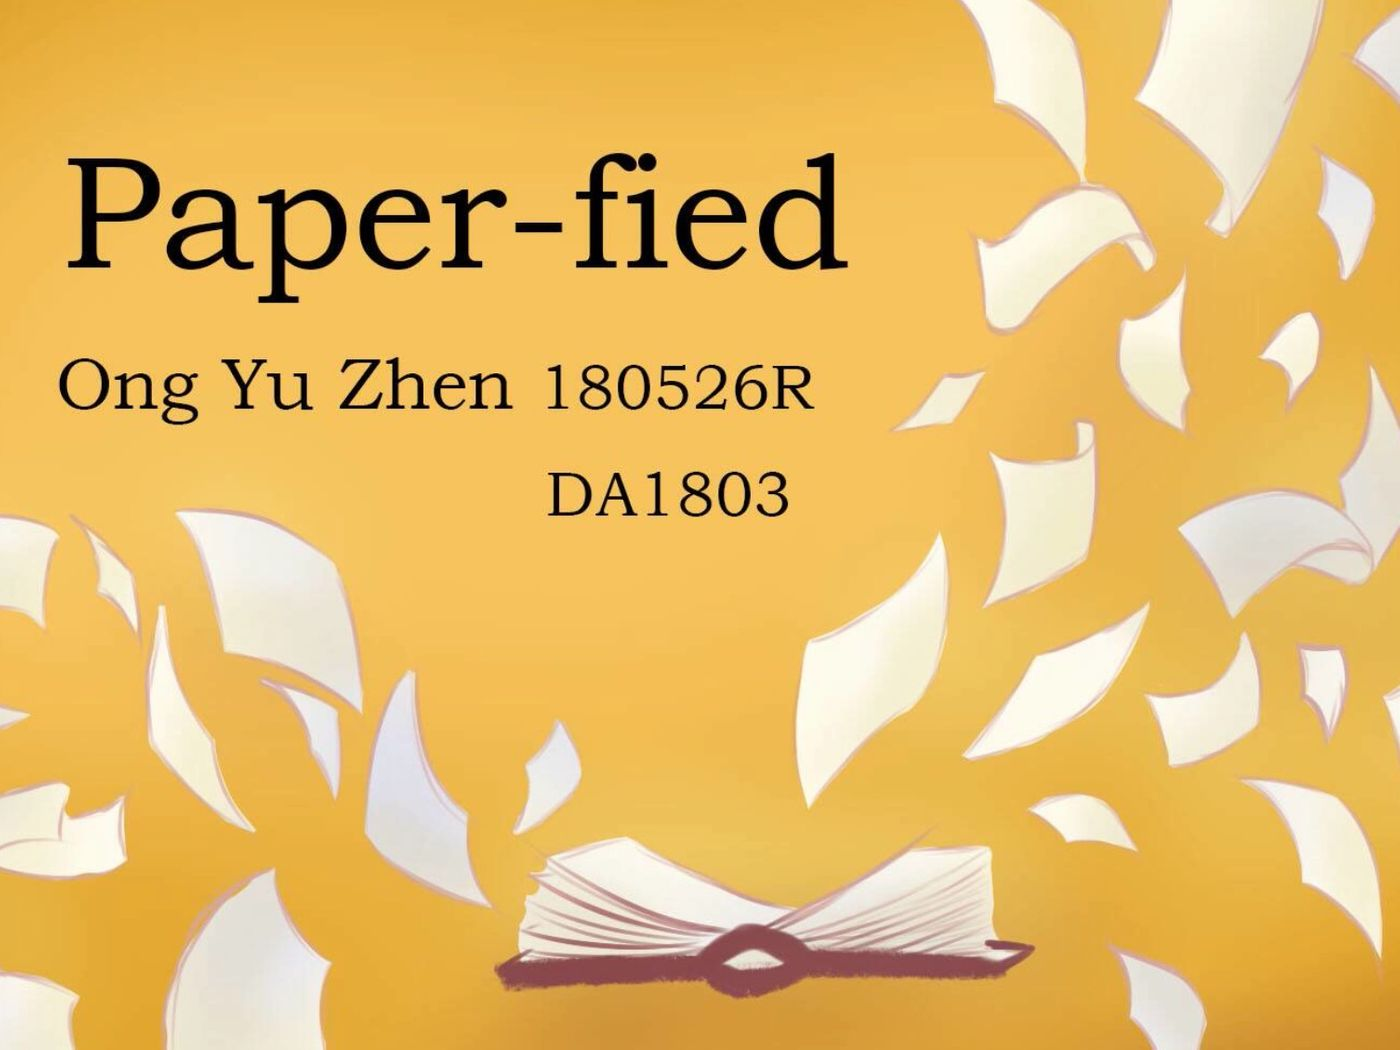 Paperfied